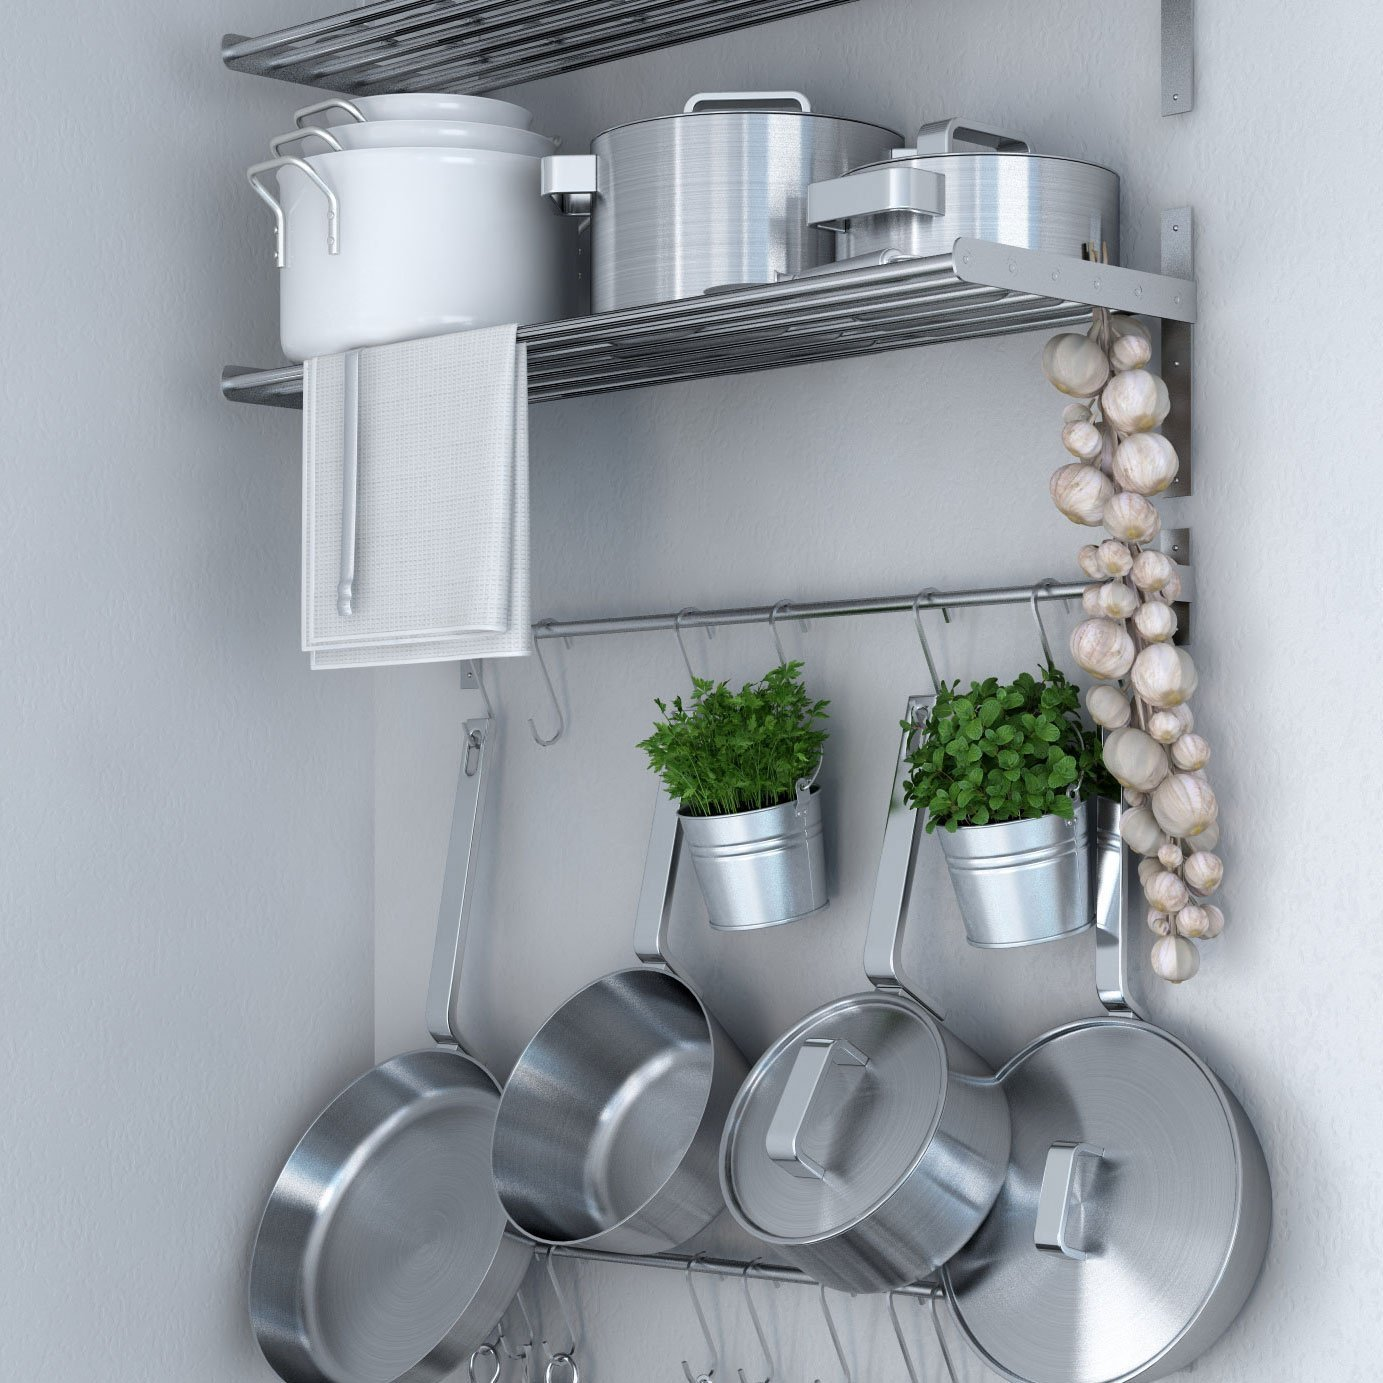 Buy Ikea Grundtal Kitchen Shelf Rail and Hooks Set Stainless Steel ...